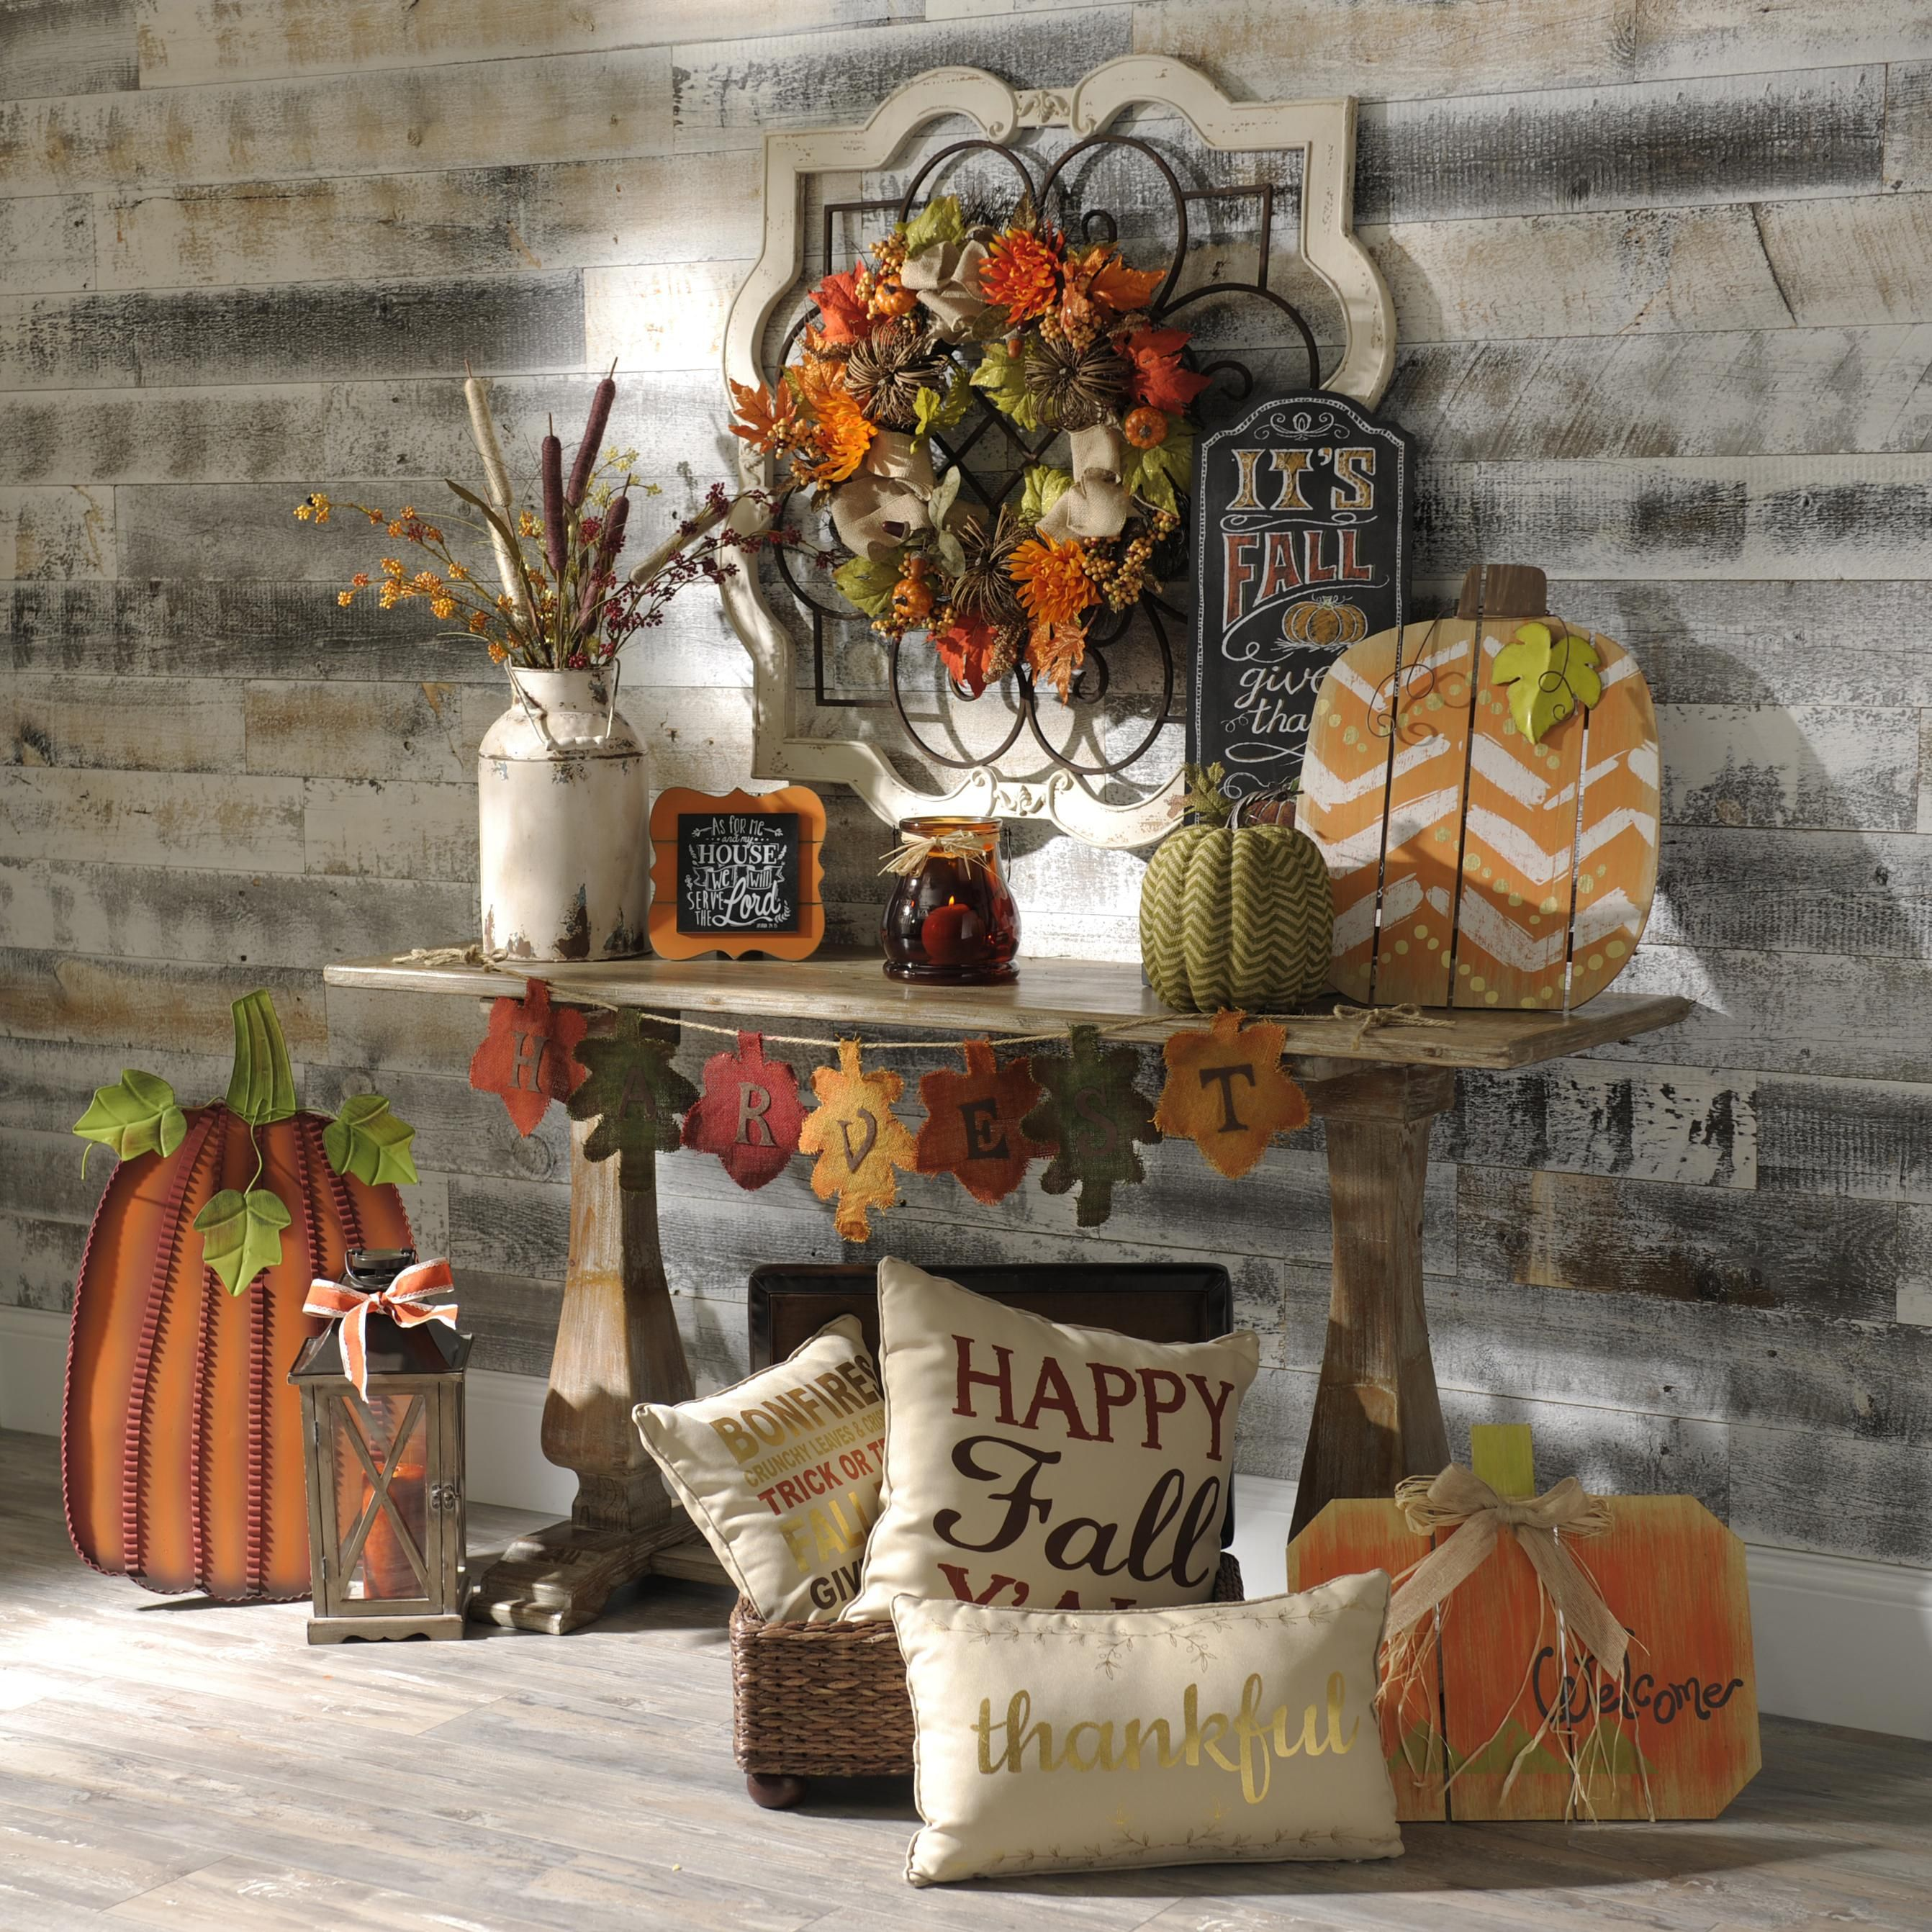 What Kind Of Fall Decor Do You Like? Wreaths, Pillows